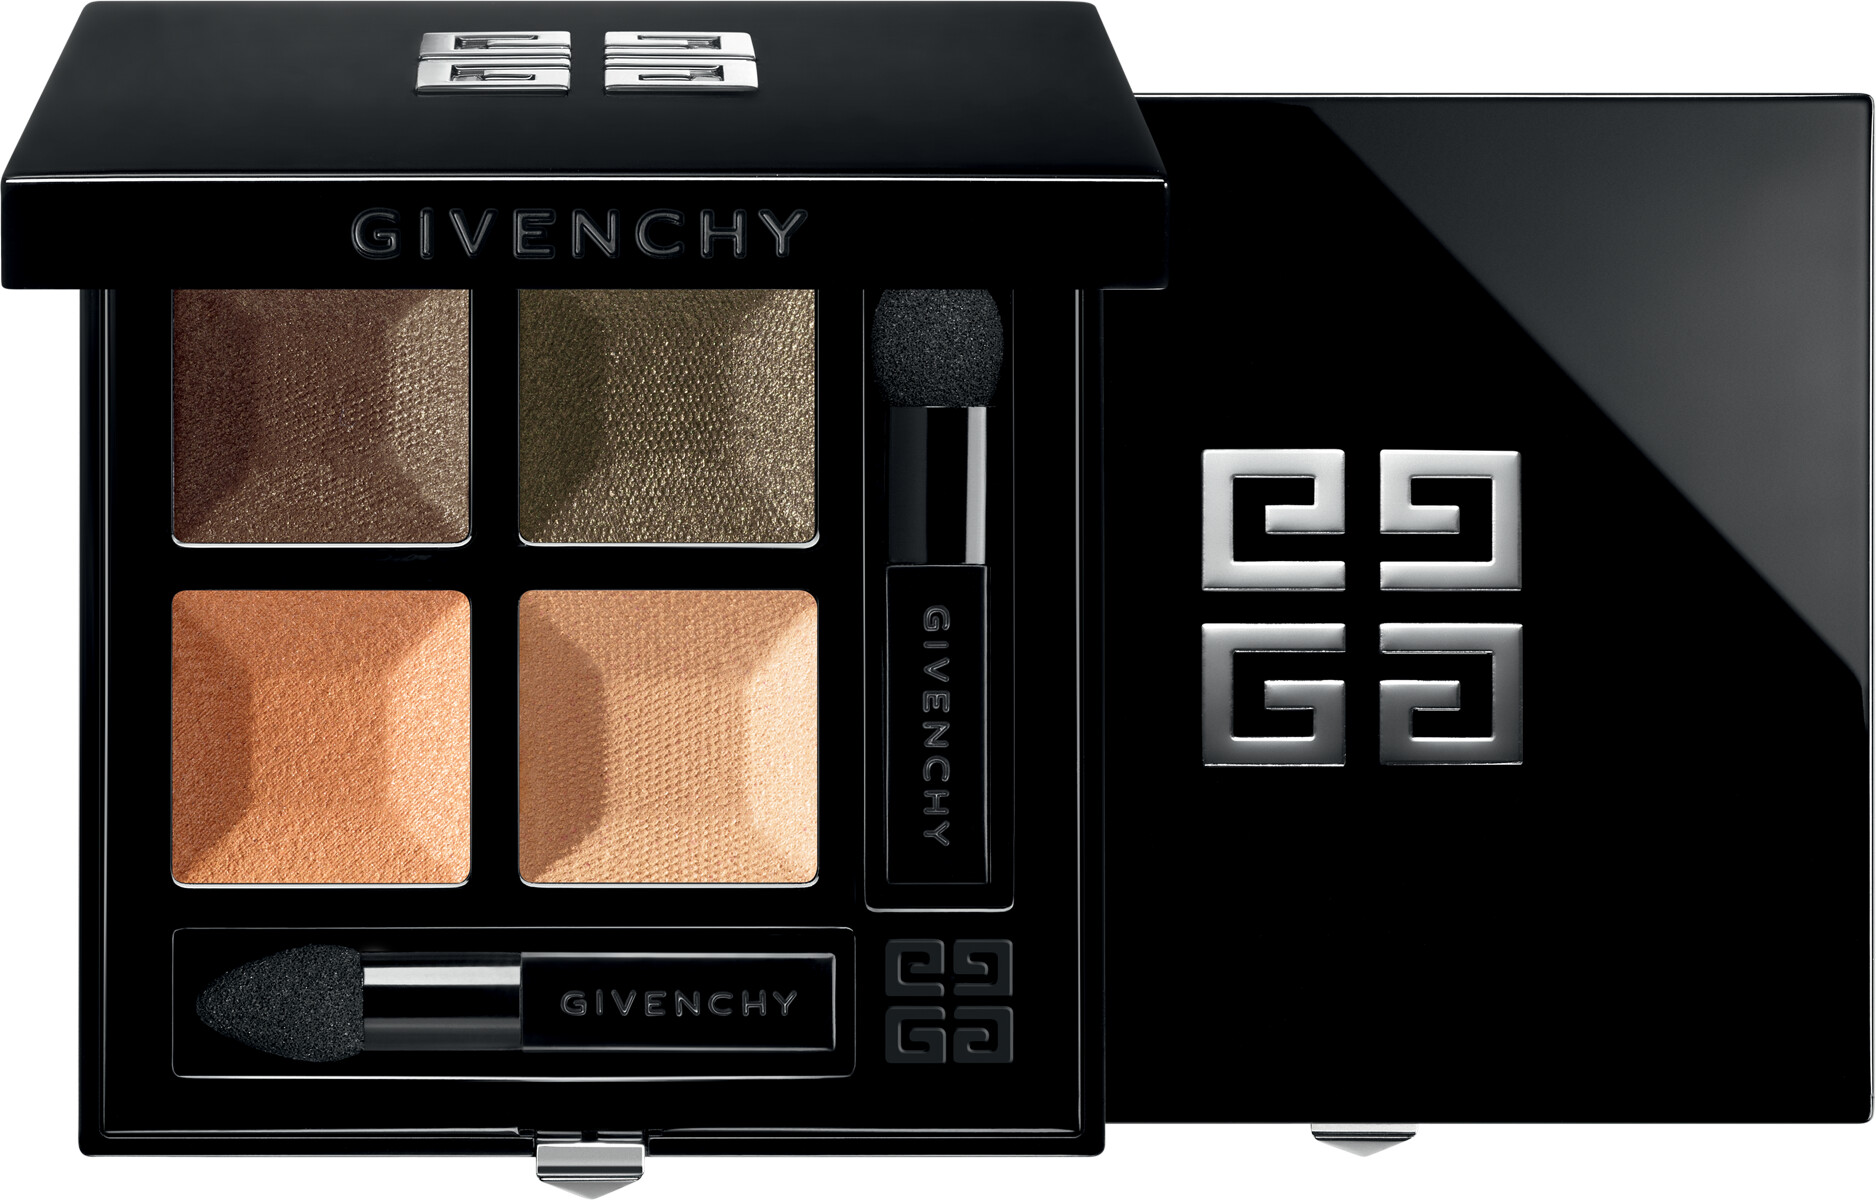 GIVENCHY Prisme Quatuor  Intense & Radiant Eyeshadow 4 Colors 4g 06  Confidence